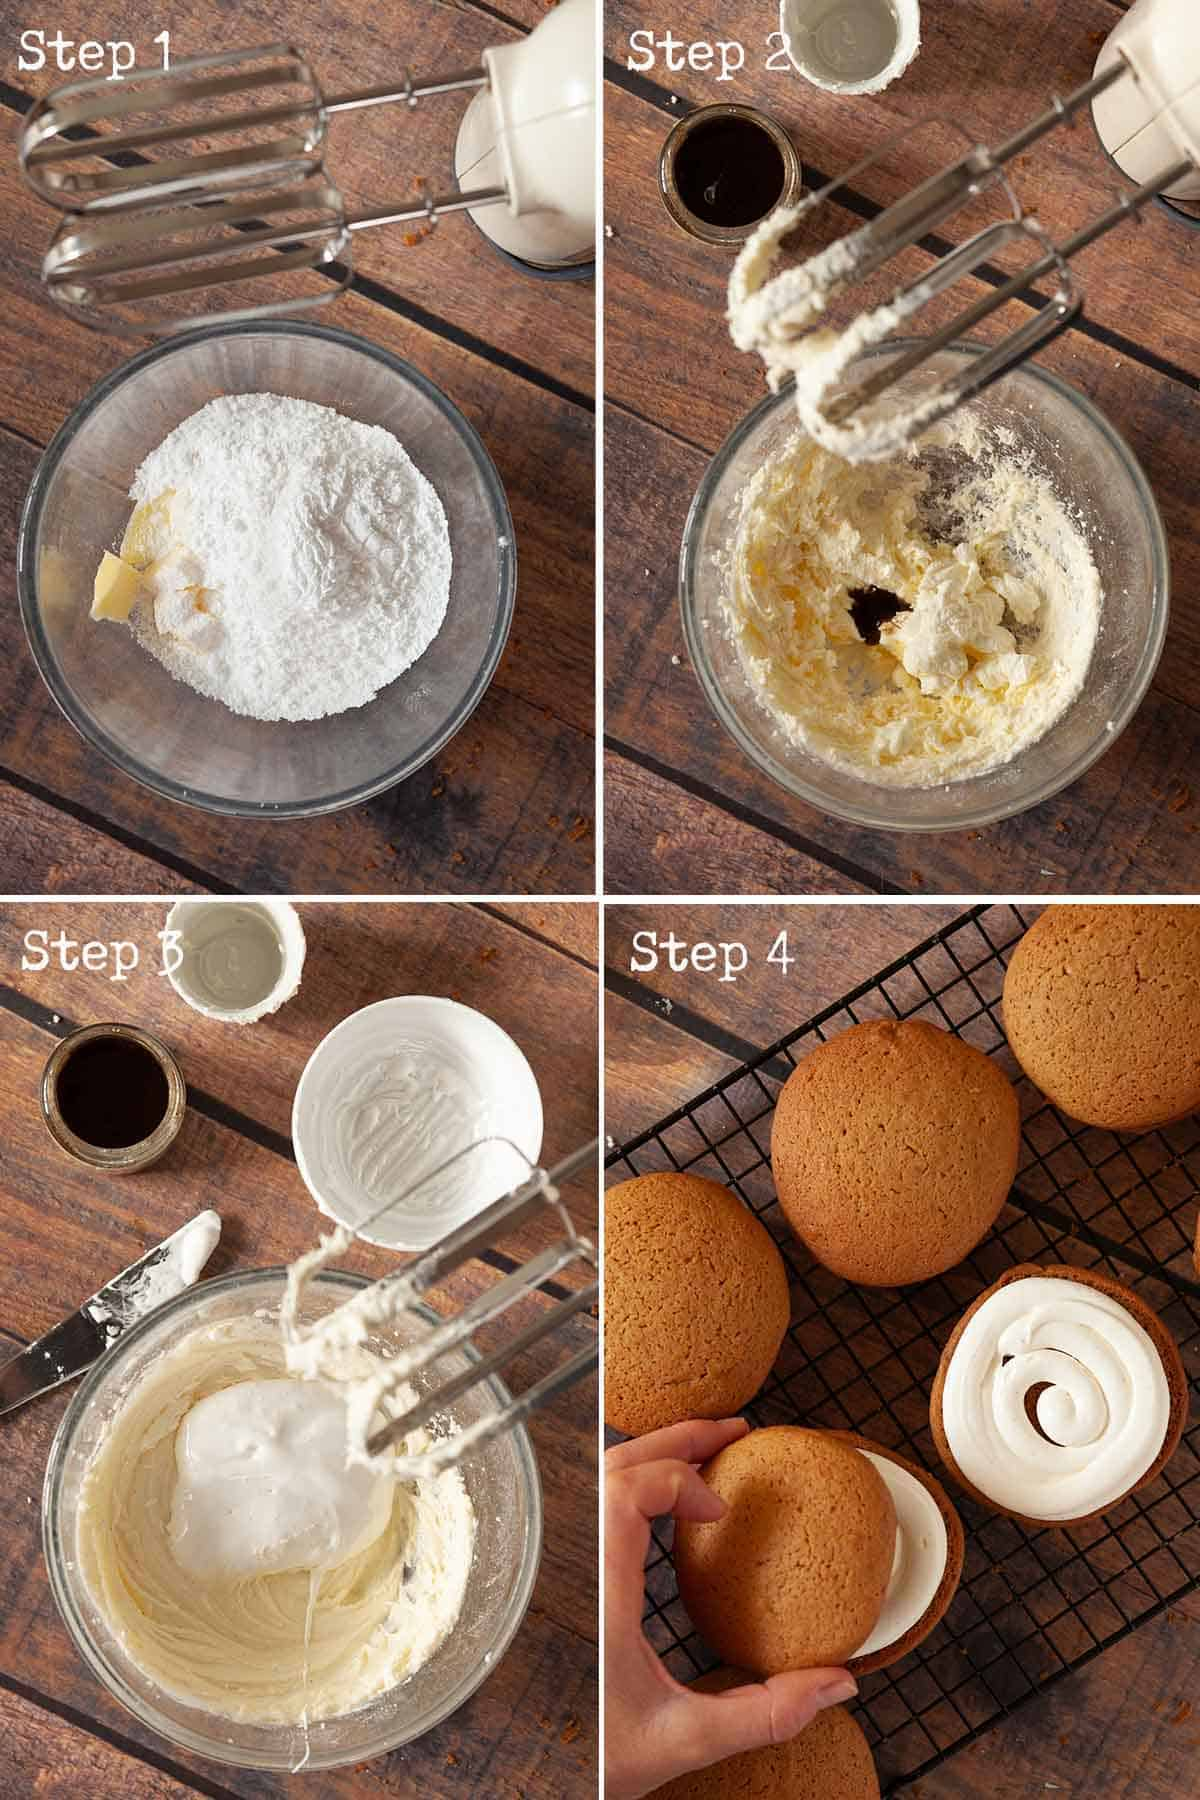 Collage of images showing buttercream being made and used to fill small cakes